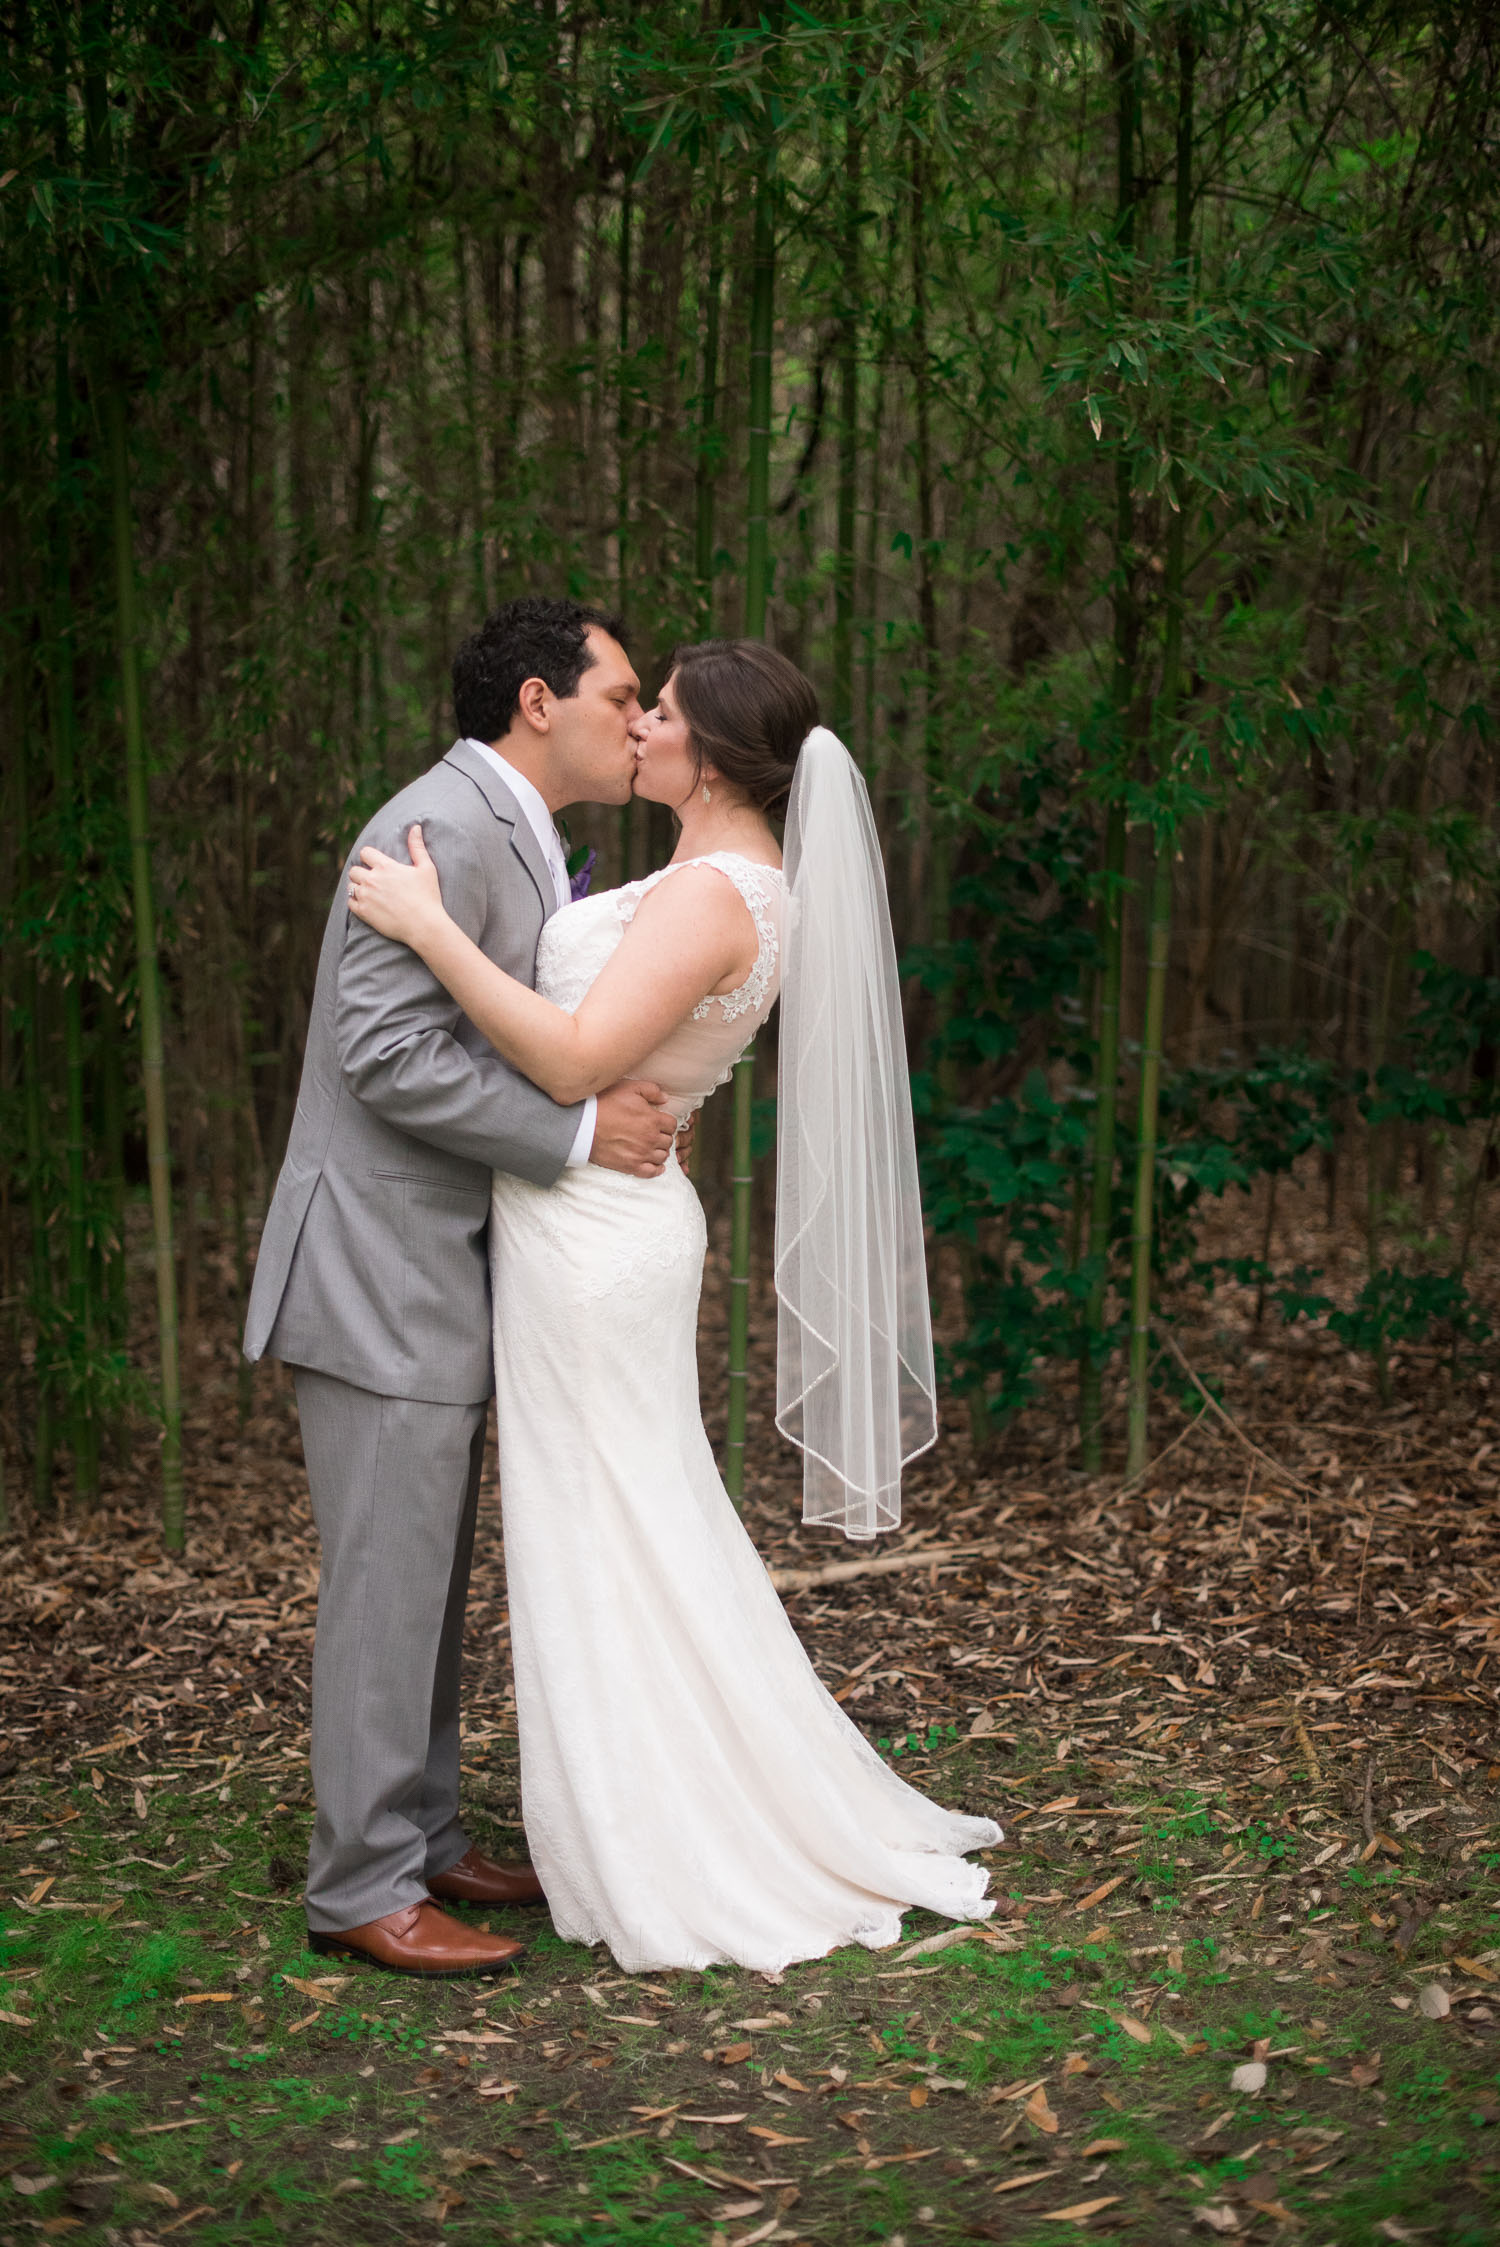 Alex and Austin Wedding Photography at Mercury Hall in Texas-117.jpg